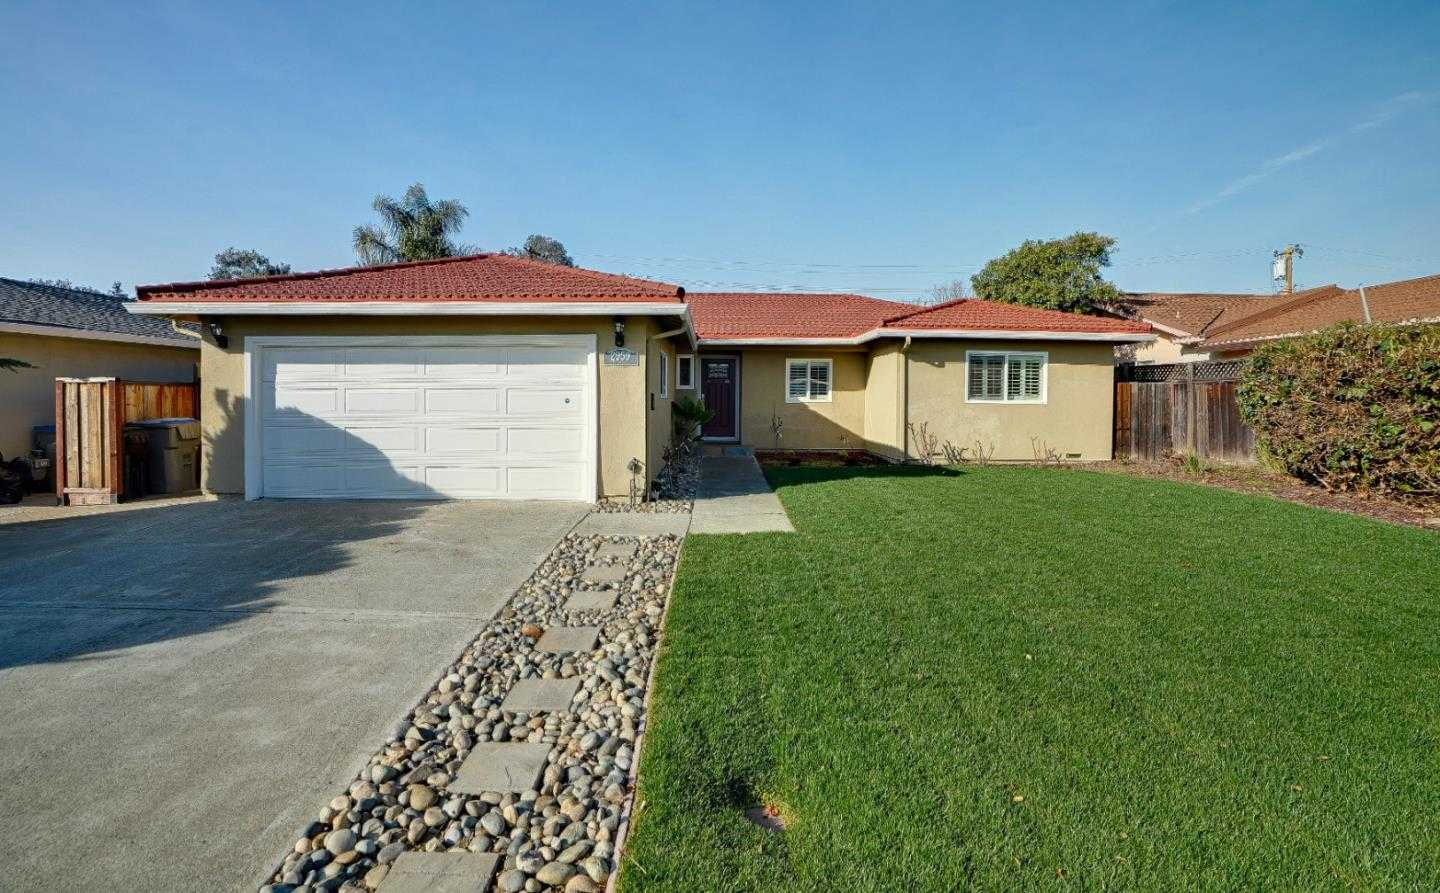 $1,298,000 - 4Br/2Ba -  for Sale in San Jose